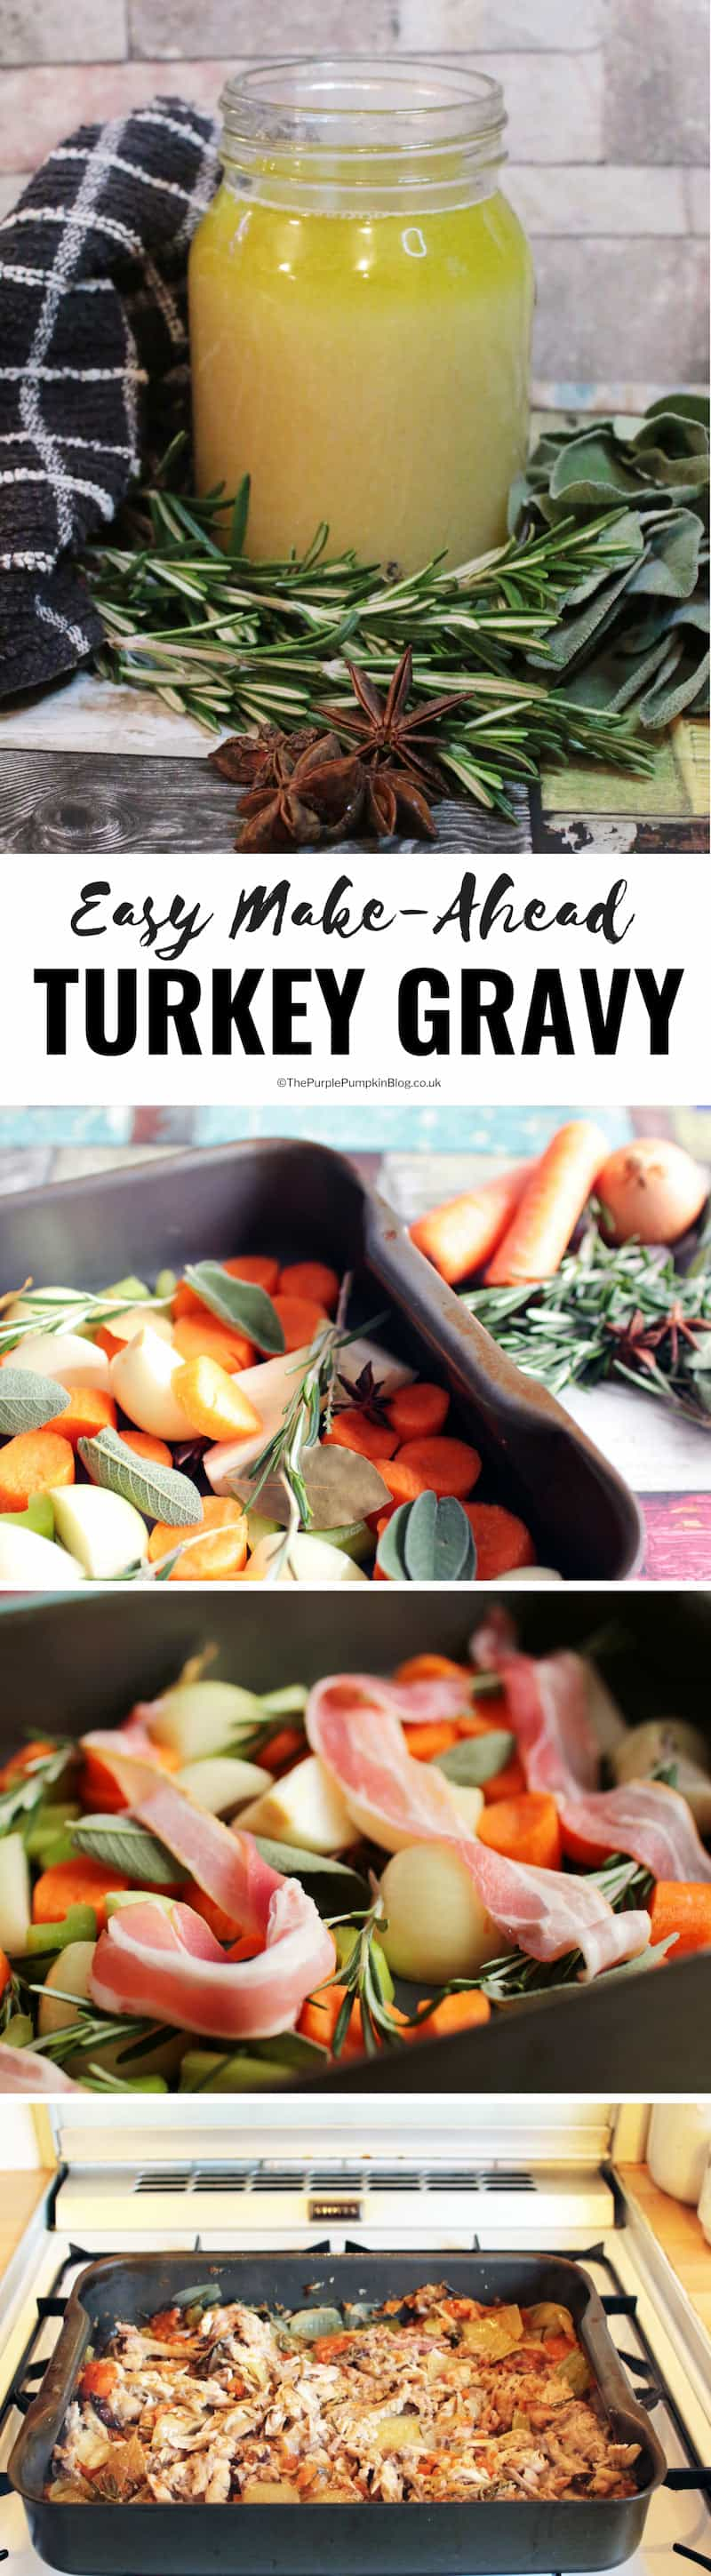 If you want to make real gravy for your festive roast - and not something out of a packet - this make-ahead turkey gravy is the recipe for you! It is easy to make, and can be prepared in advance too - win/win! Perfect for Christmas or Thanksgiving!